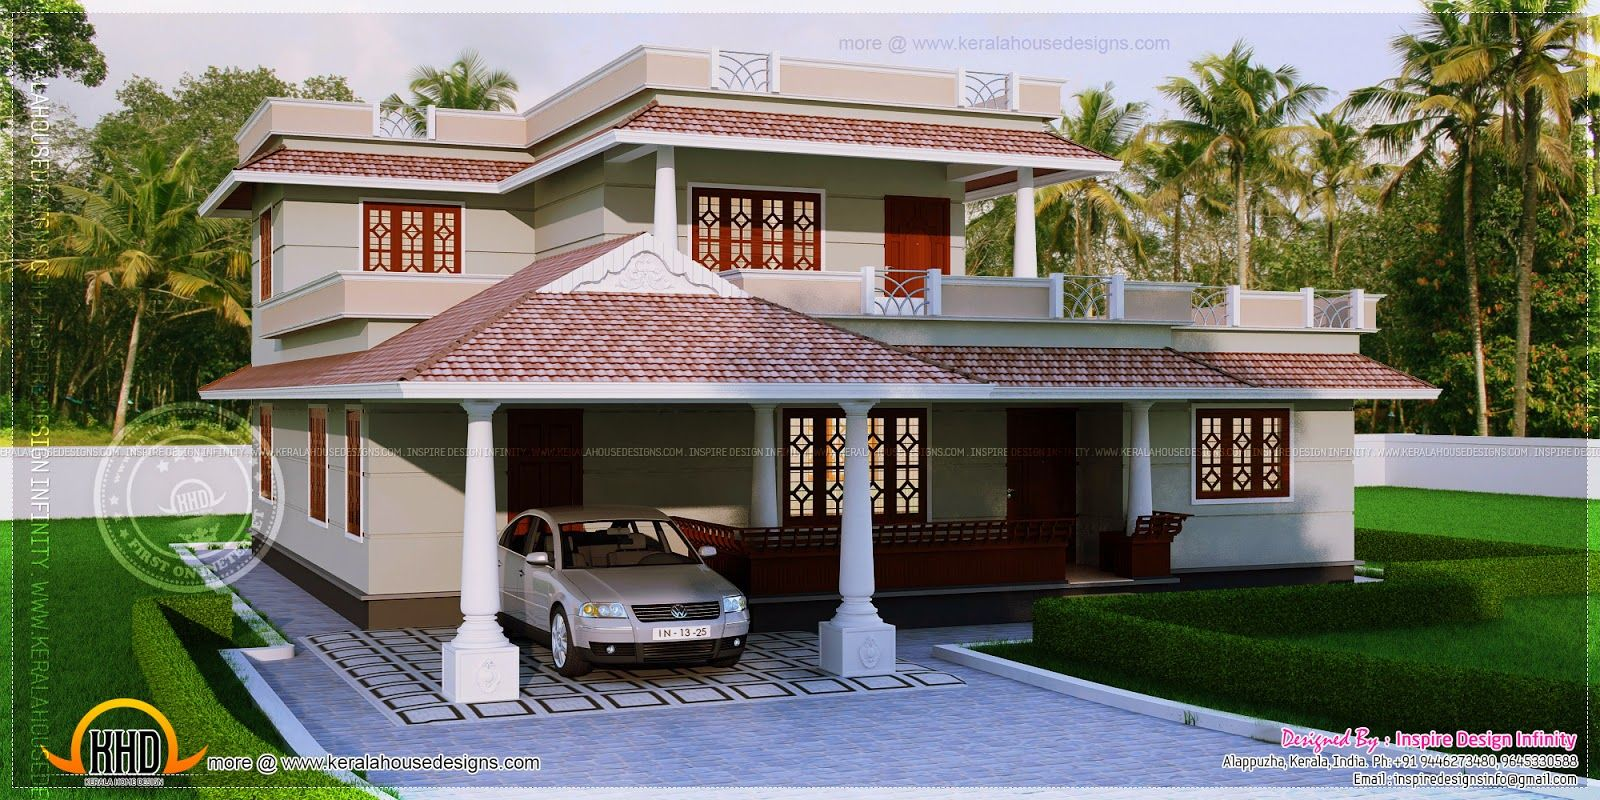 Bedroom Kerala Style House Square Yards Indian House Plans Bedroom American Bedroom Kerala Style House Squ Kerala House Design Indian House Plans Indian Homes